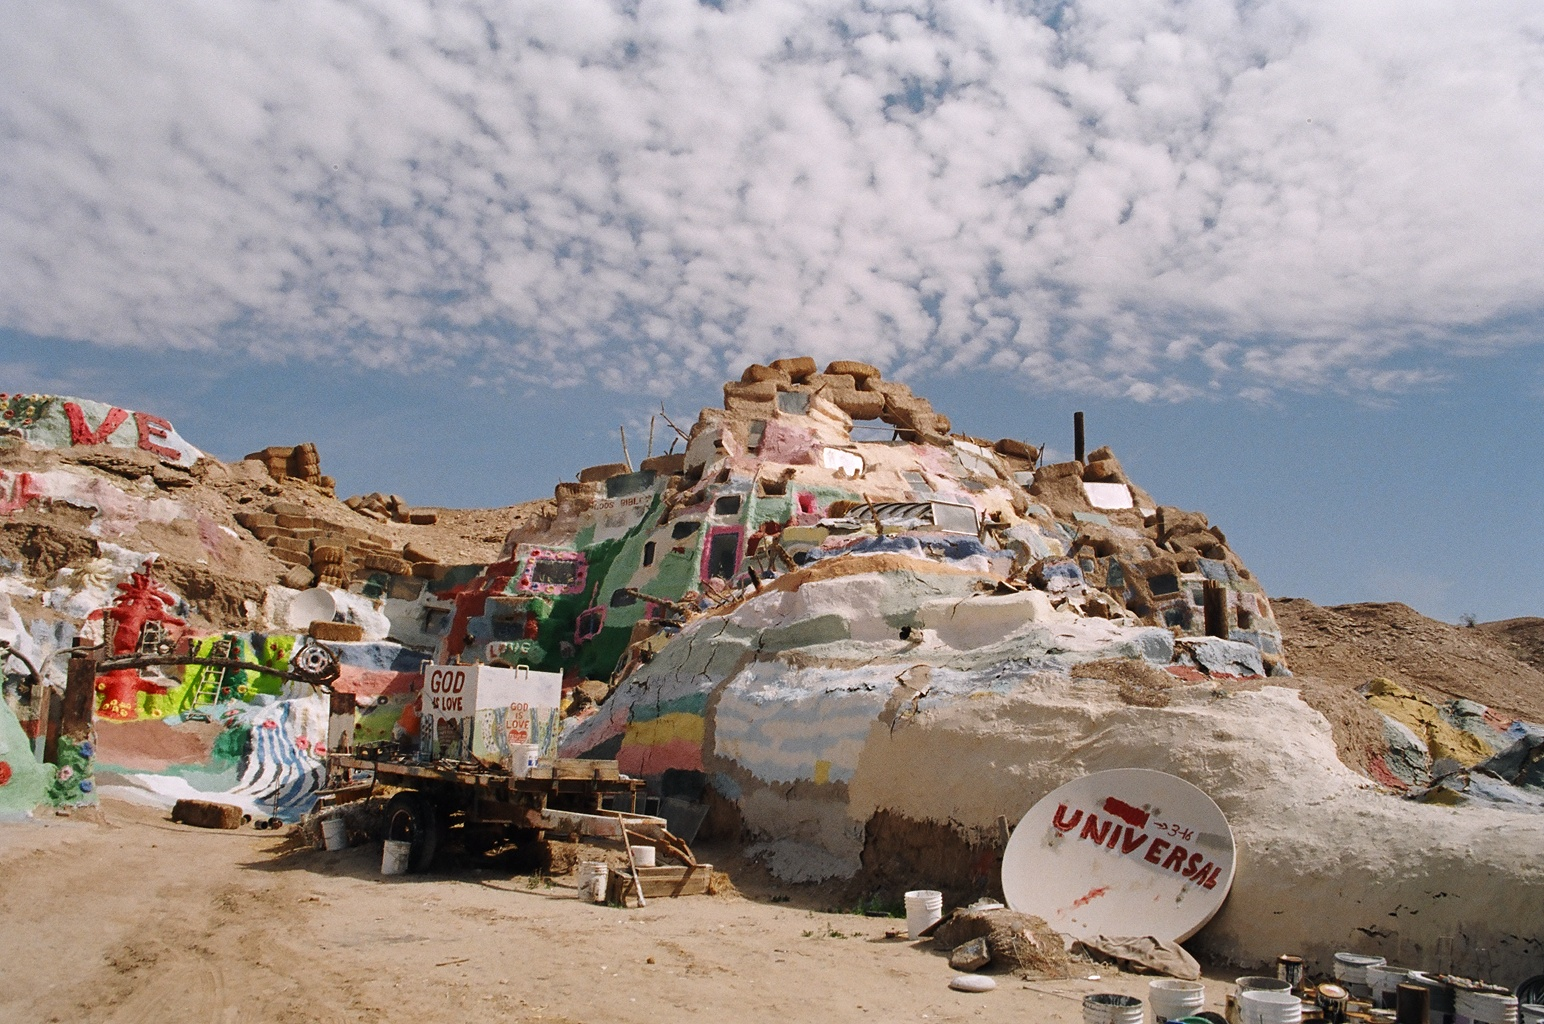 finding salvation, at salvation mountain